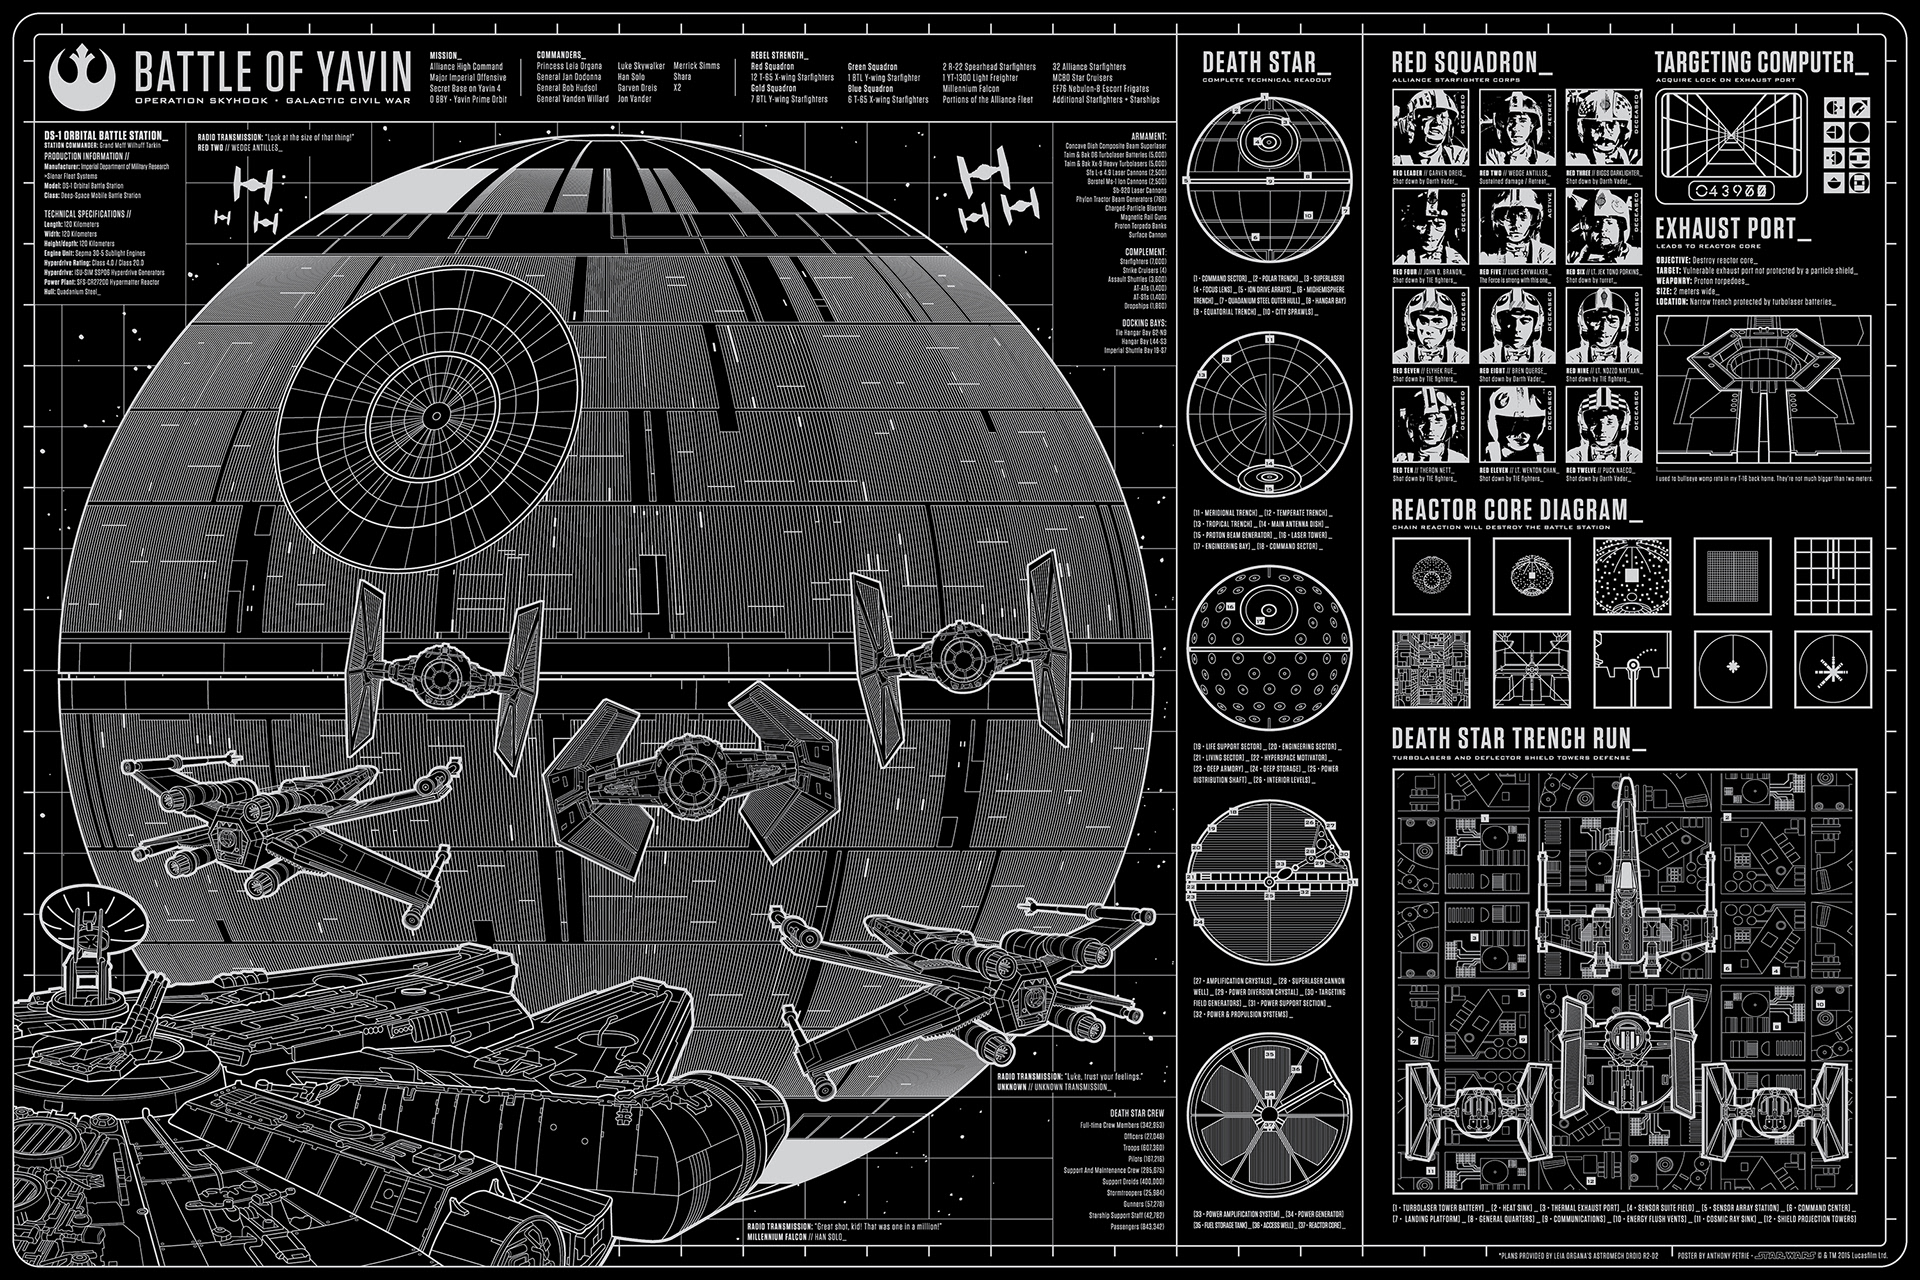 Anthony Petrie - Supernova Schematic (Star Wars) on batman schematics, tron schematics, wall-e schematics, terminator schematics, kamen rider schematics, robotech schematics, prometheus schematics, a wing fighter schematics, pneumatic schematics, macross schematics, stargate schematics, star destroyer, pacific rim schematics,